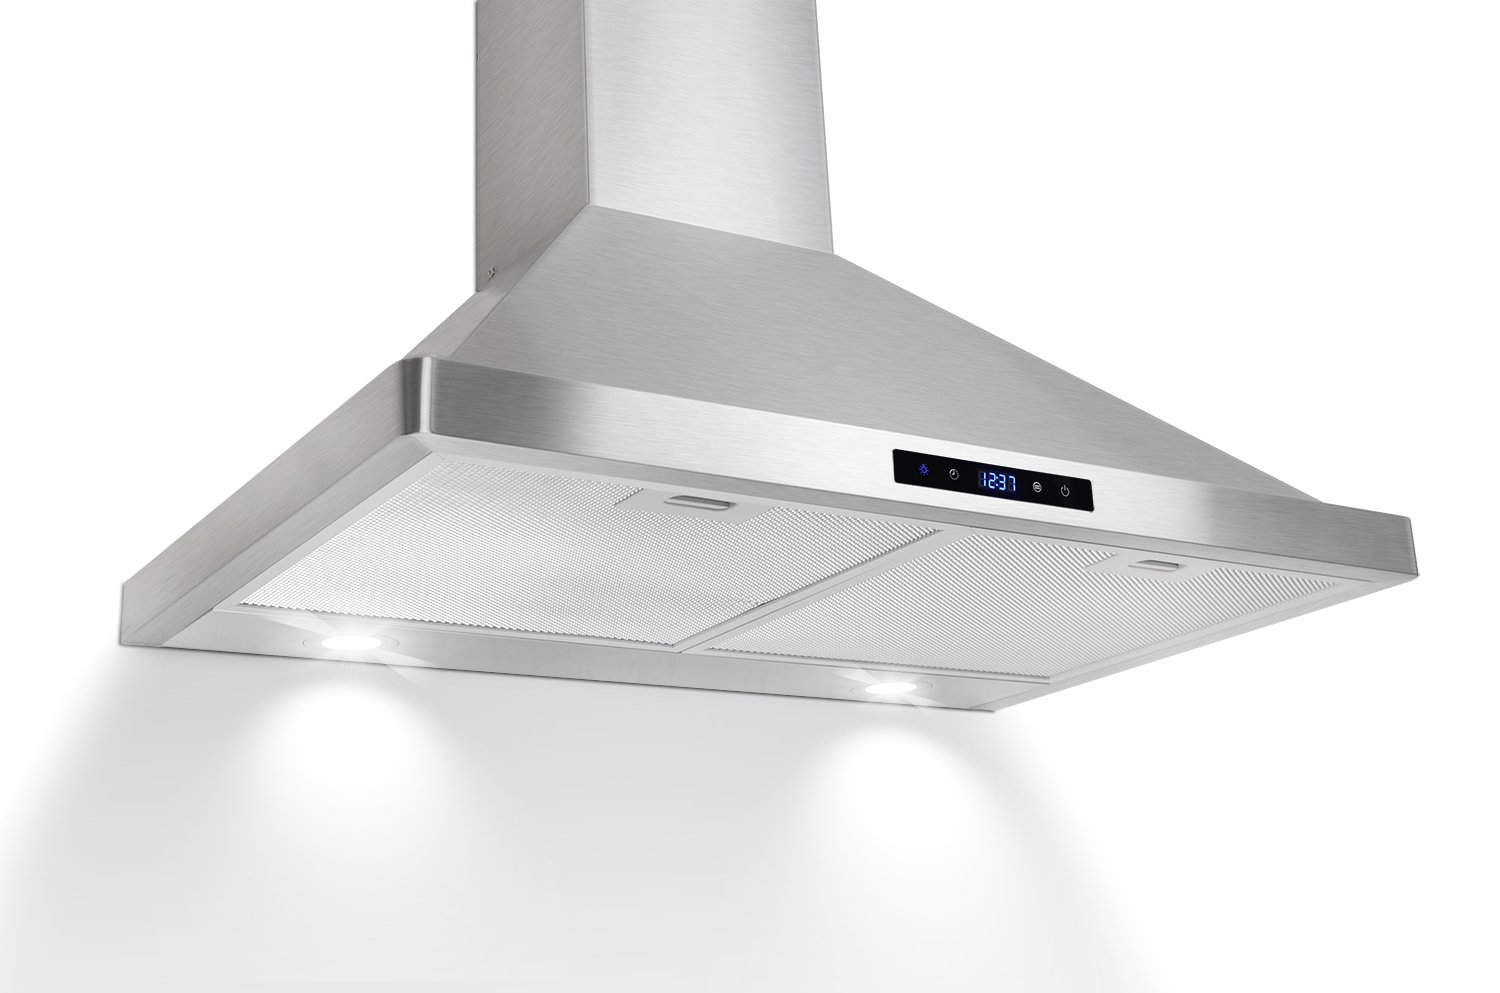 AKDY 30 Kitchen Wall Mount Stainless Steel Touch Panel Control Range Hood AZ63175S Stove Vents